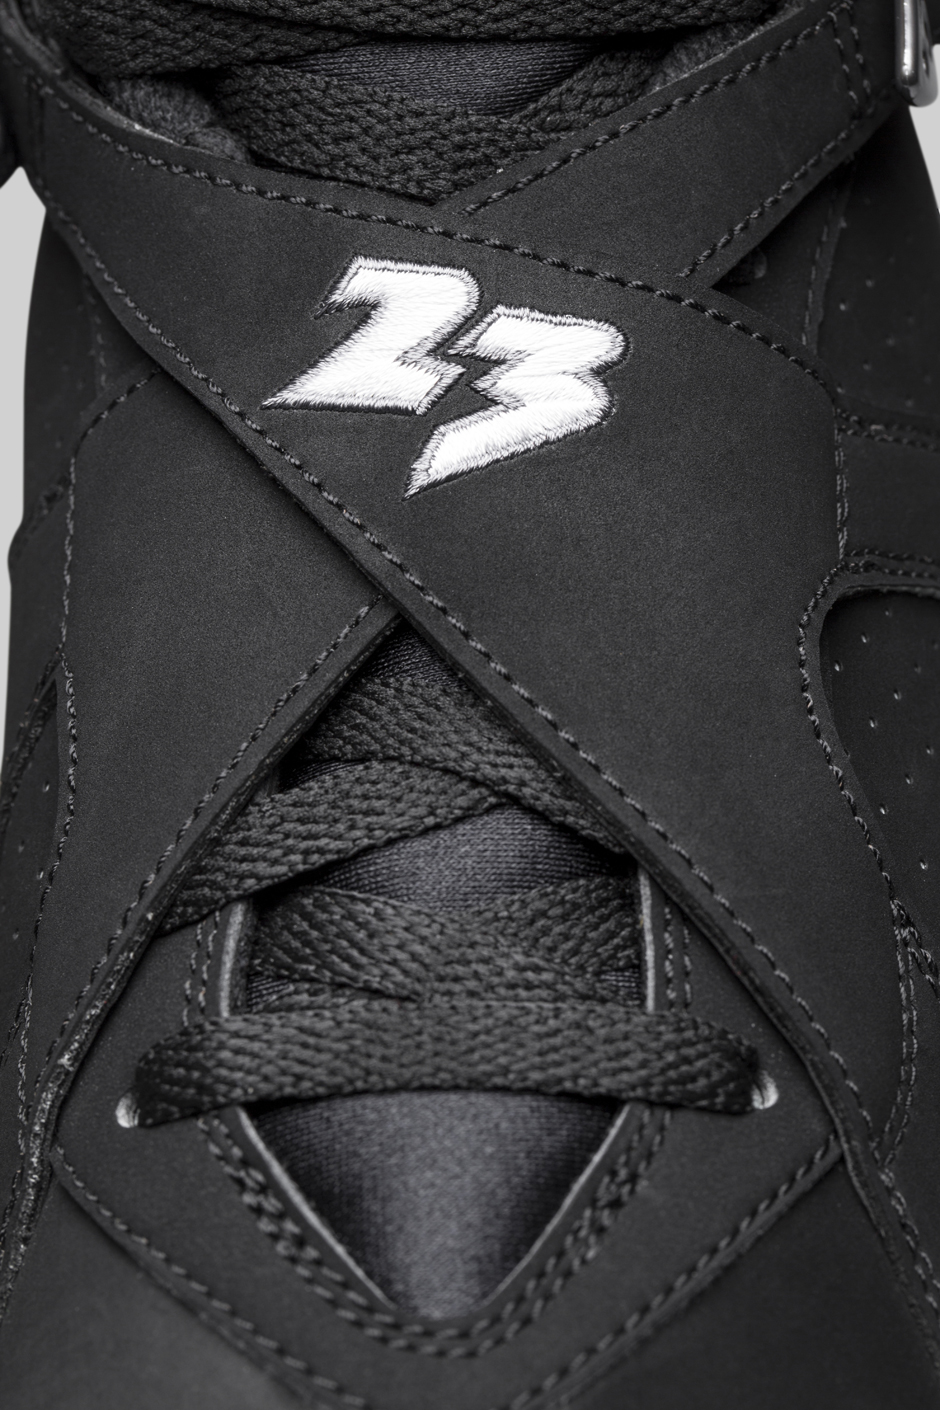 newest f5516 cfd60 Air Jordan 8 Holiday-2015 Releases   SneakerNews.com